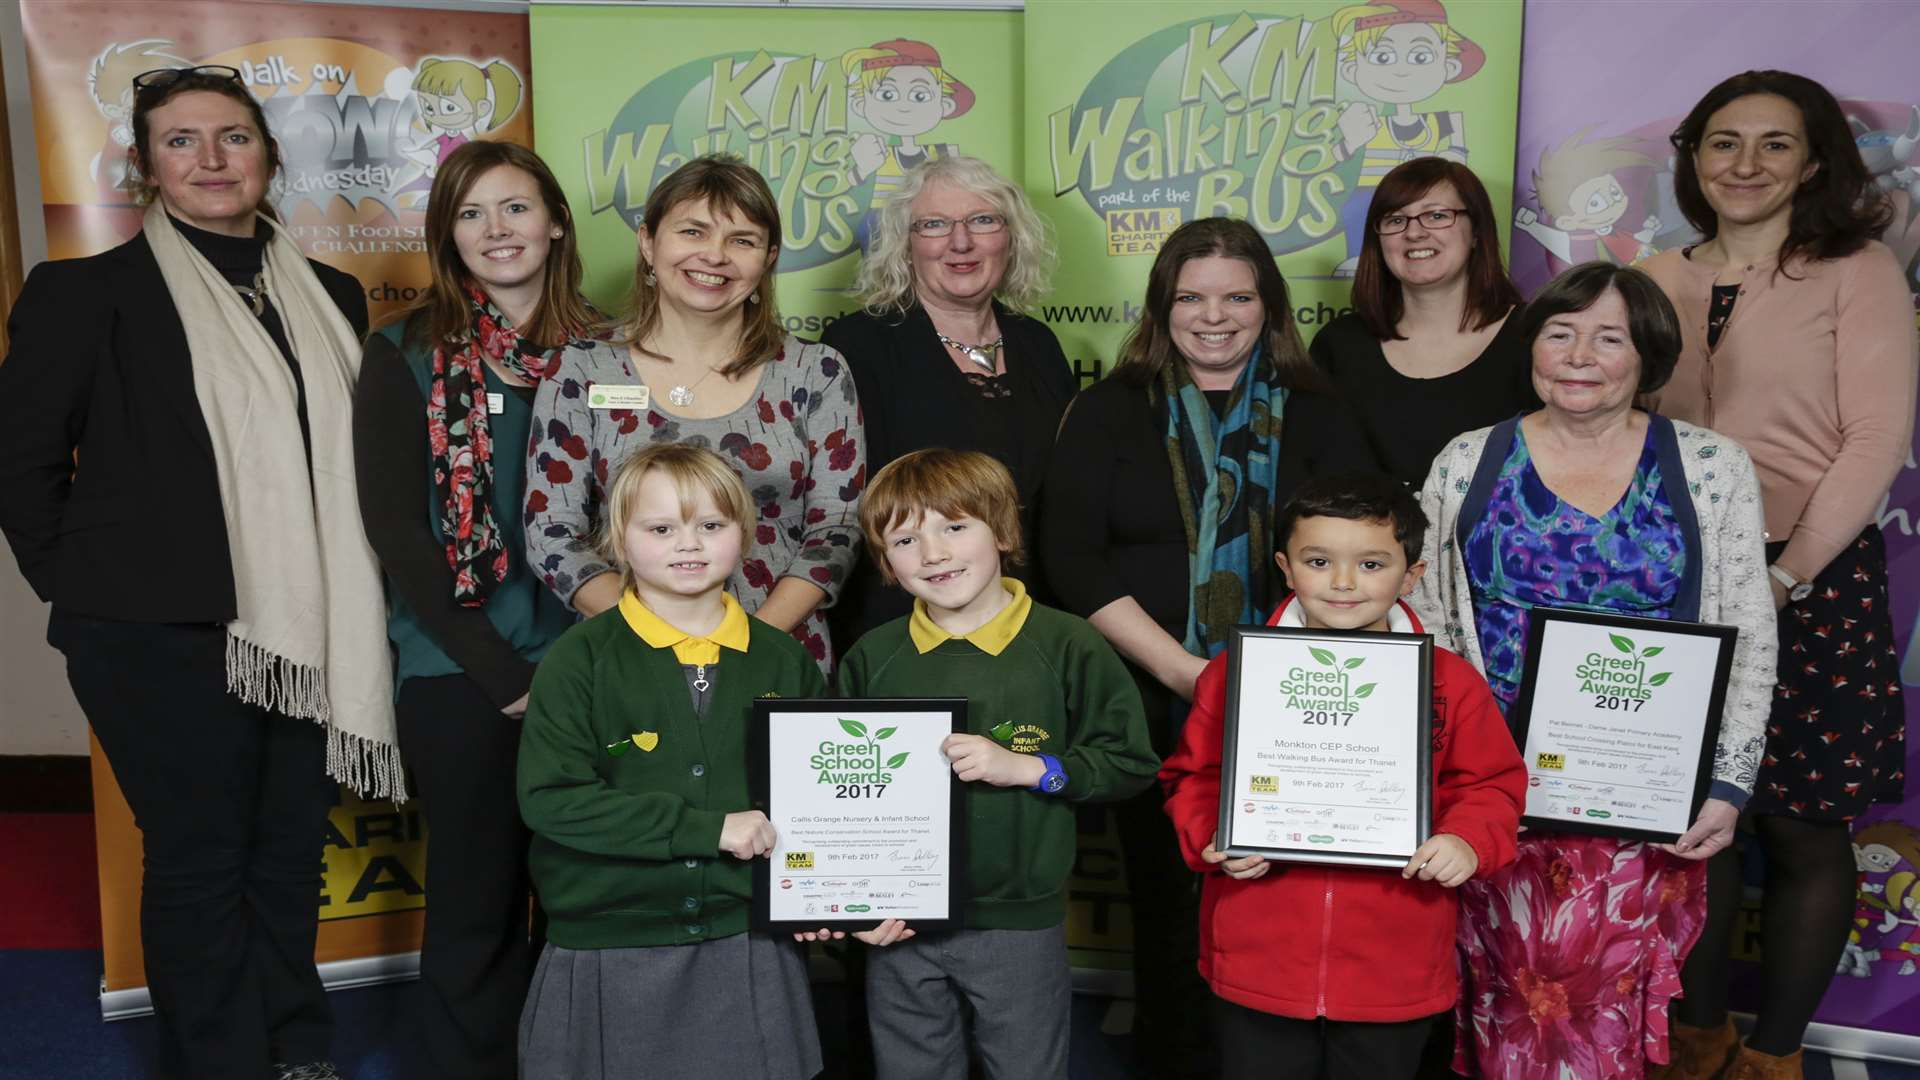 Winners of the 2017 awards included Pat Bennett of Dame Janet Primary Academy (Best School Crossing Patrol), Monkton CEP School (Best Walking Bus), and Callis Grange Nursery and Infant School (Best Primary School Nature Conservation.